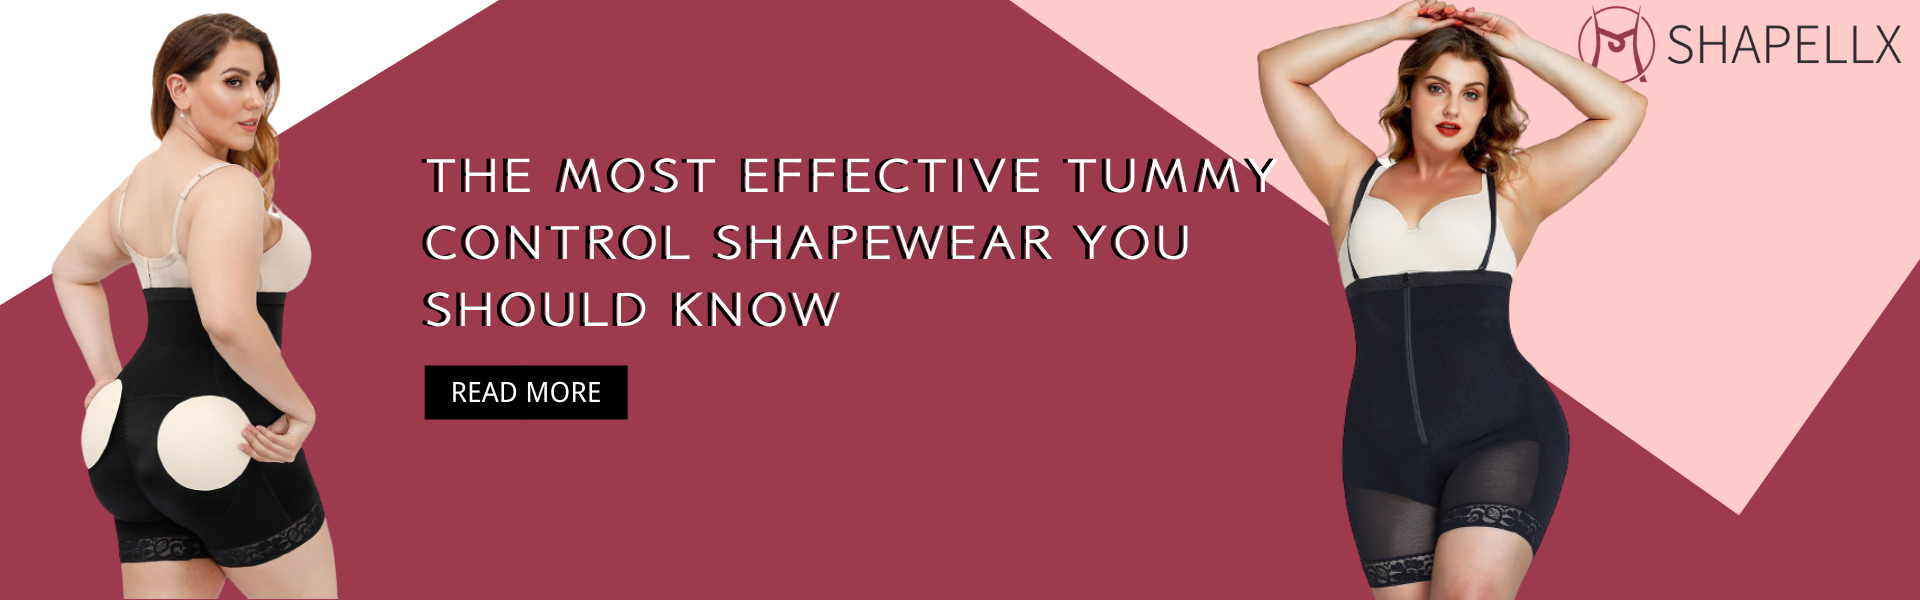 The Most Effective Tummy Control Shapewear You Need Right Now